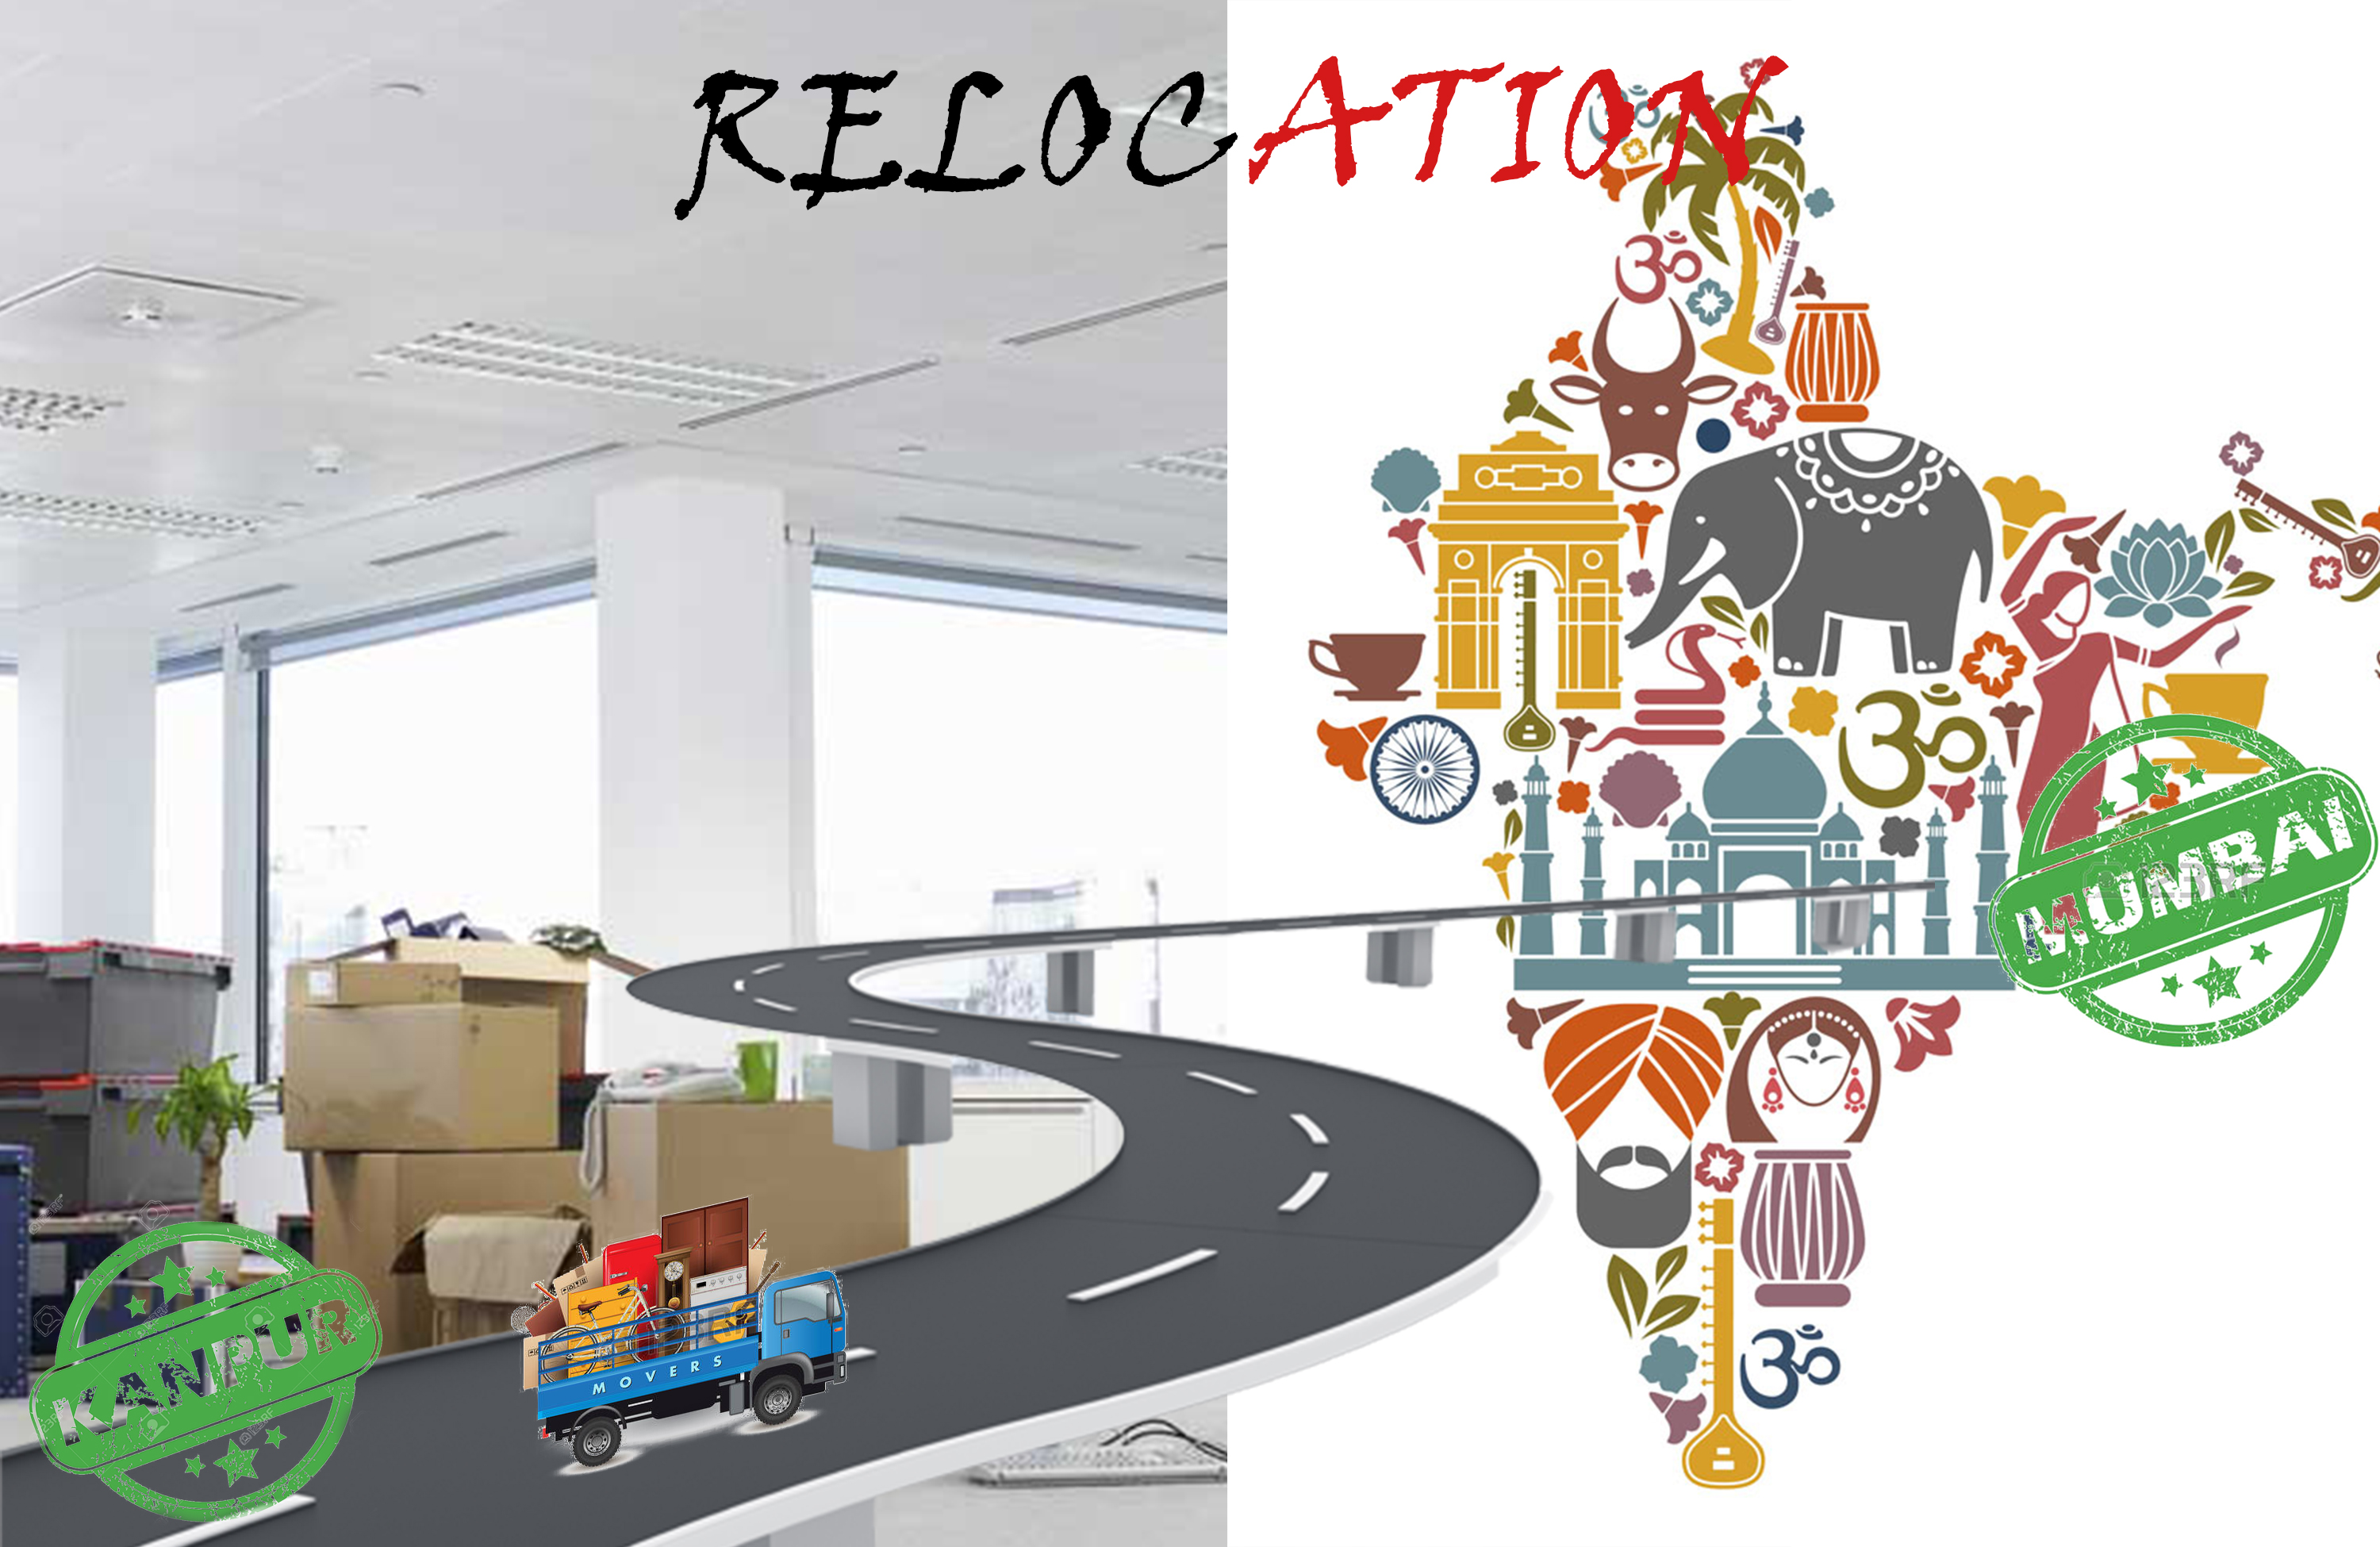 Commercial relocation service from Kanpur to Navi Mumbai